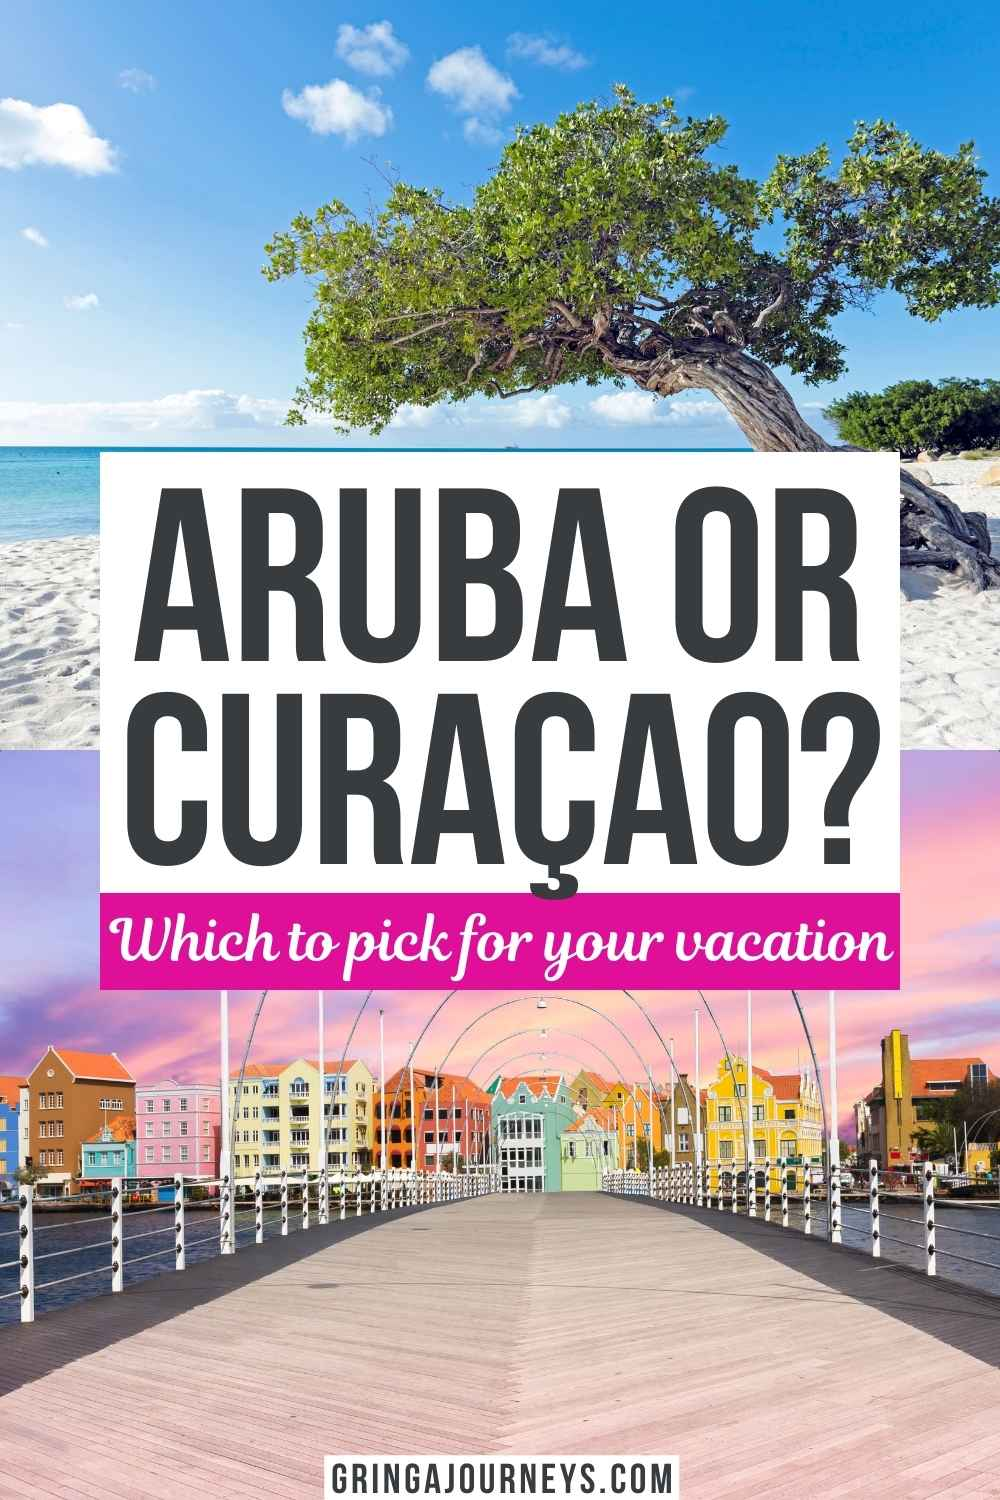 Is Aruba or Curaçao better? We'll compare Aruba vs. Curaçao based on geography, popularity, hotels, beaches, diving, culture, and more to help you plan your perfect Dutch Caribbean vacation.   curacao vs aruba for vacation   aruba or curacao honeymoon   aruba and curaçao vacations   curacao vs aruba   abc islands   dutch Caribbean vacation